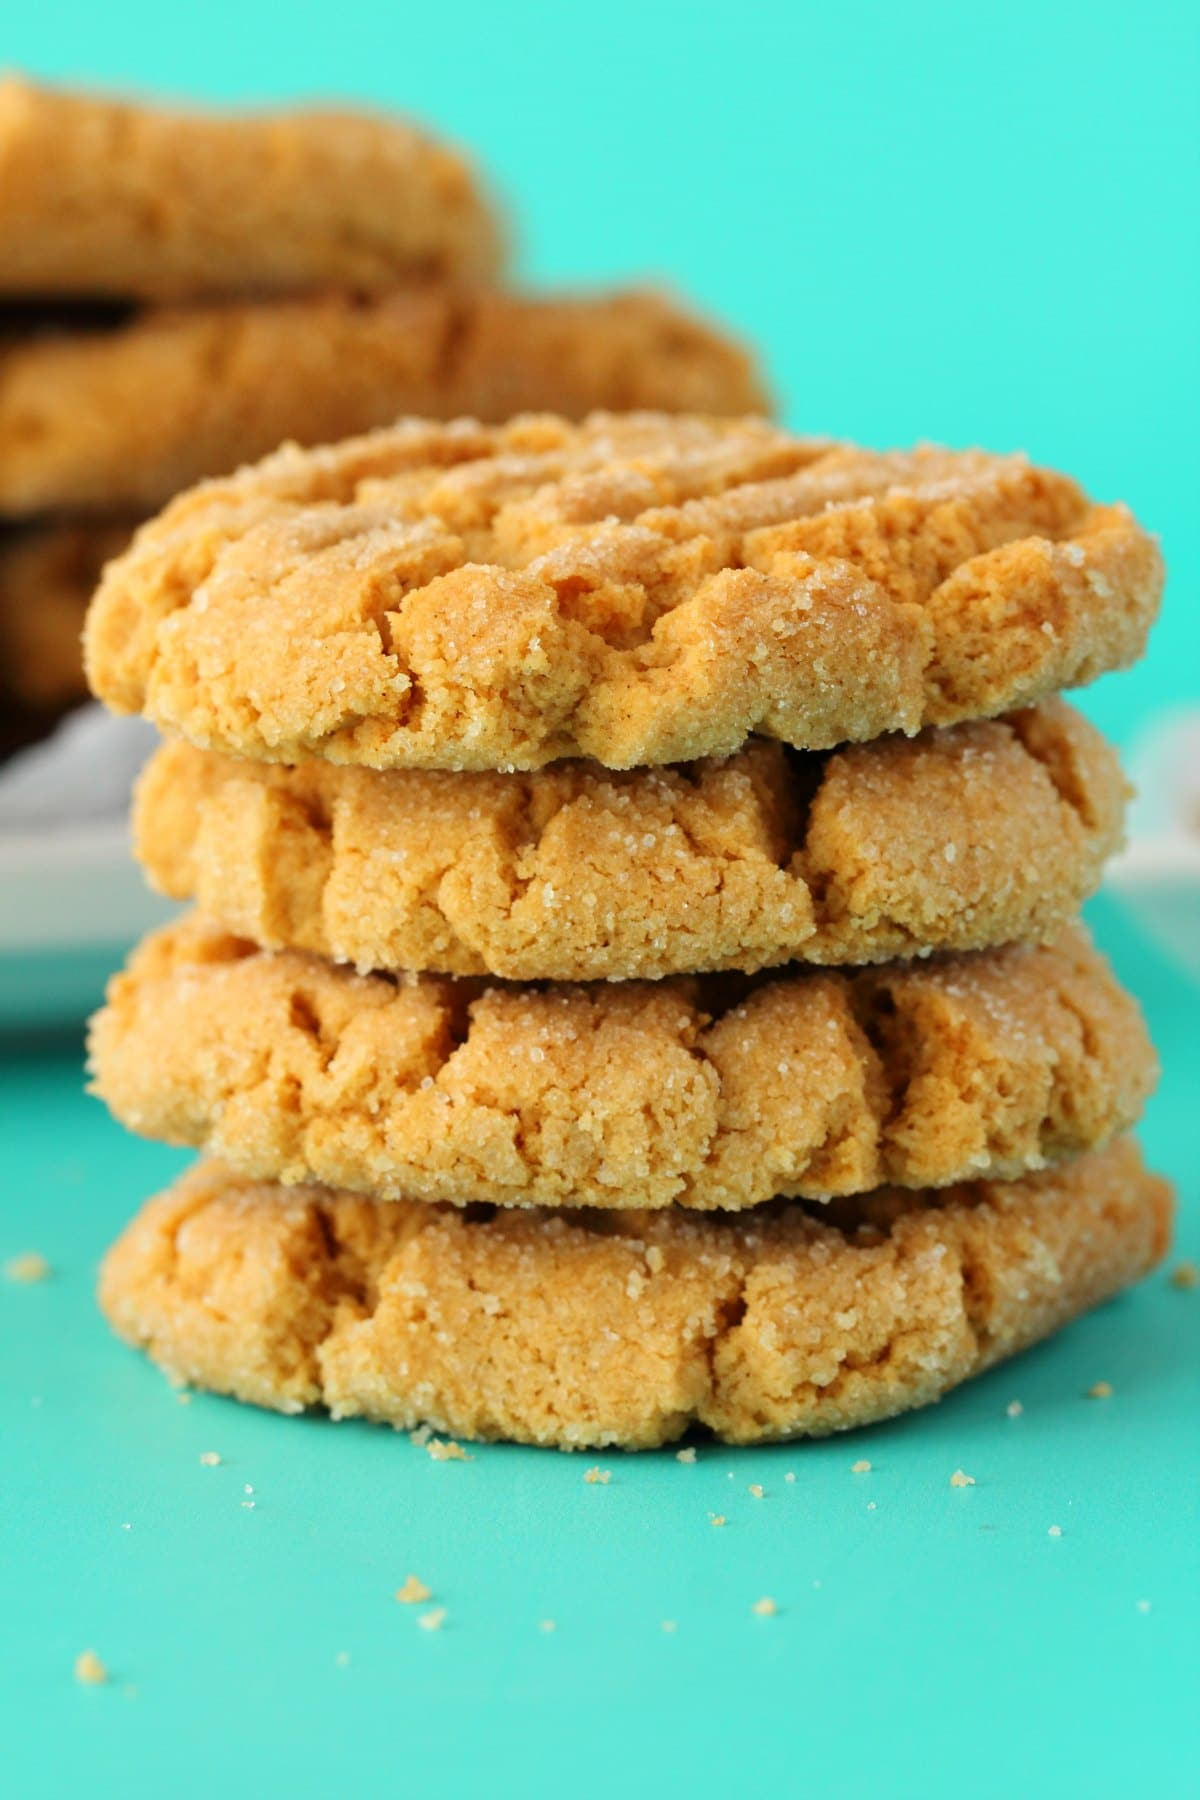 A stack of four peanut butter cookies.